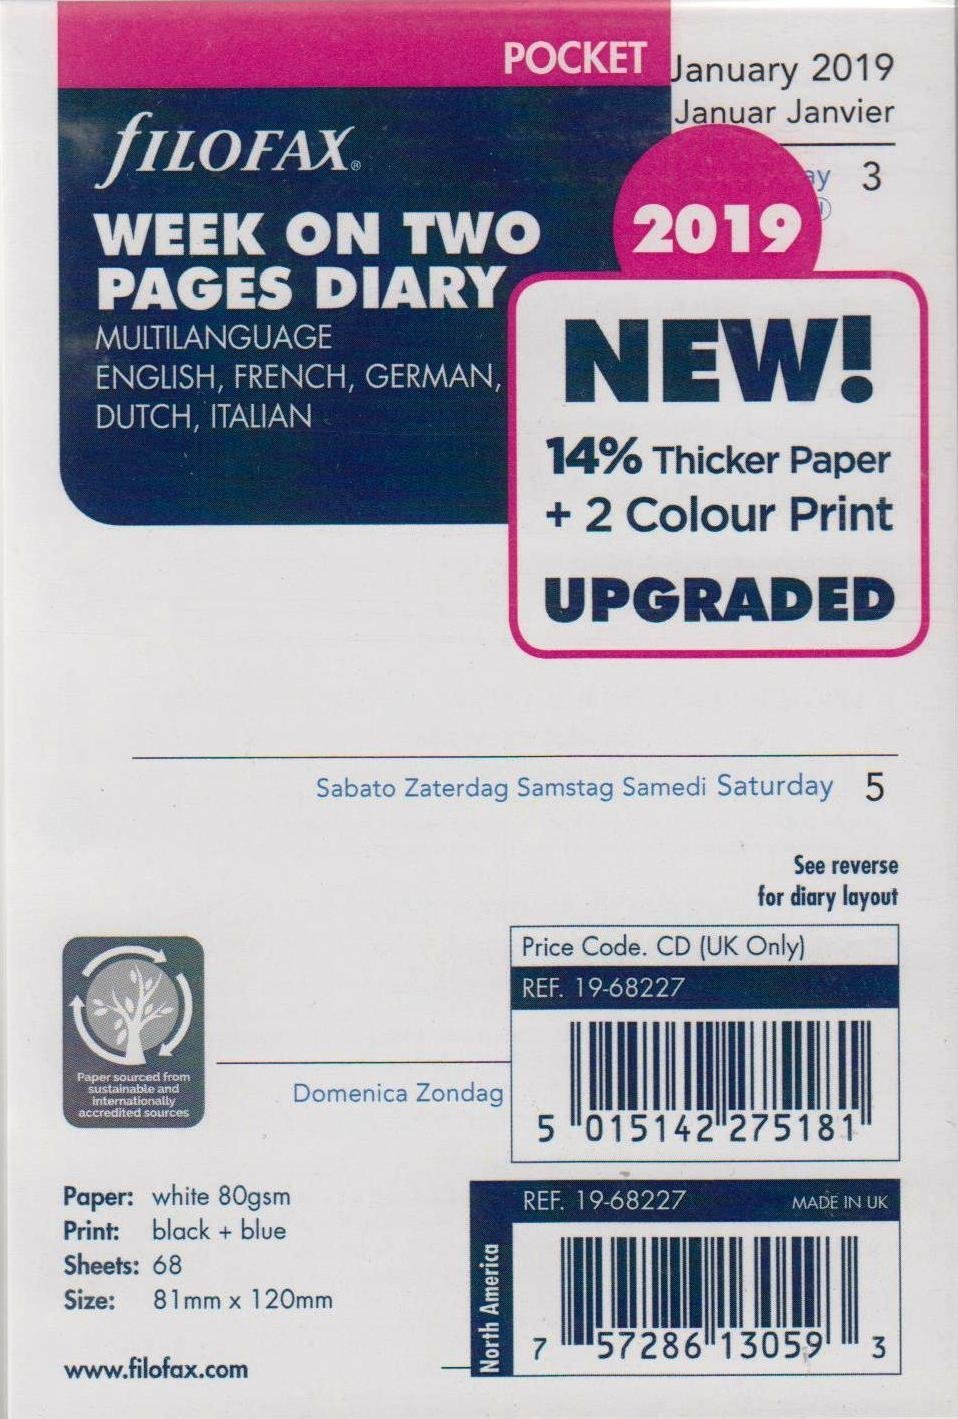 Filofax 19-68227 Pocket Week On Two Pages 2019 Diary